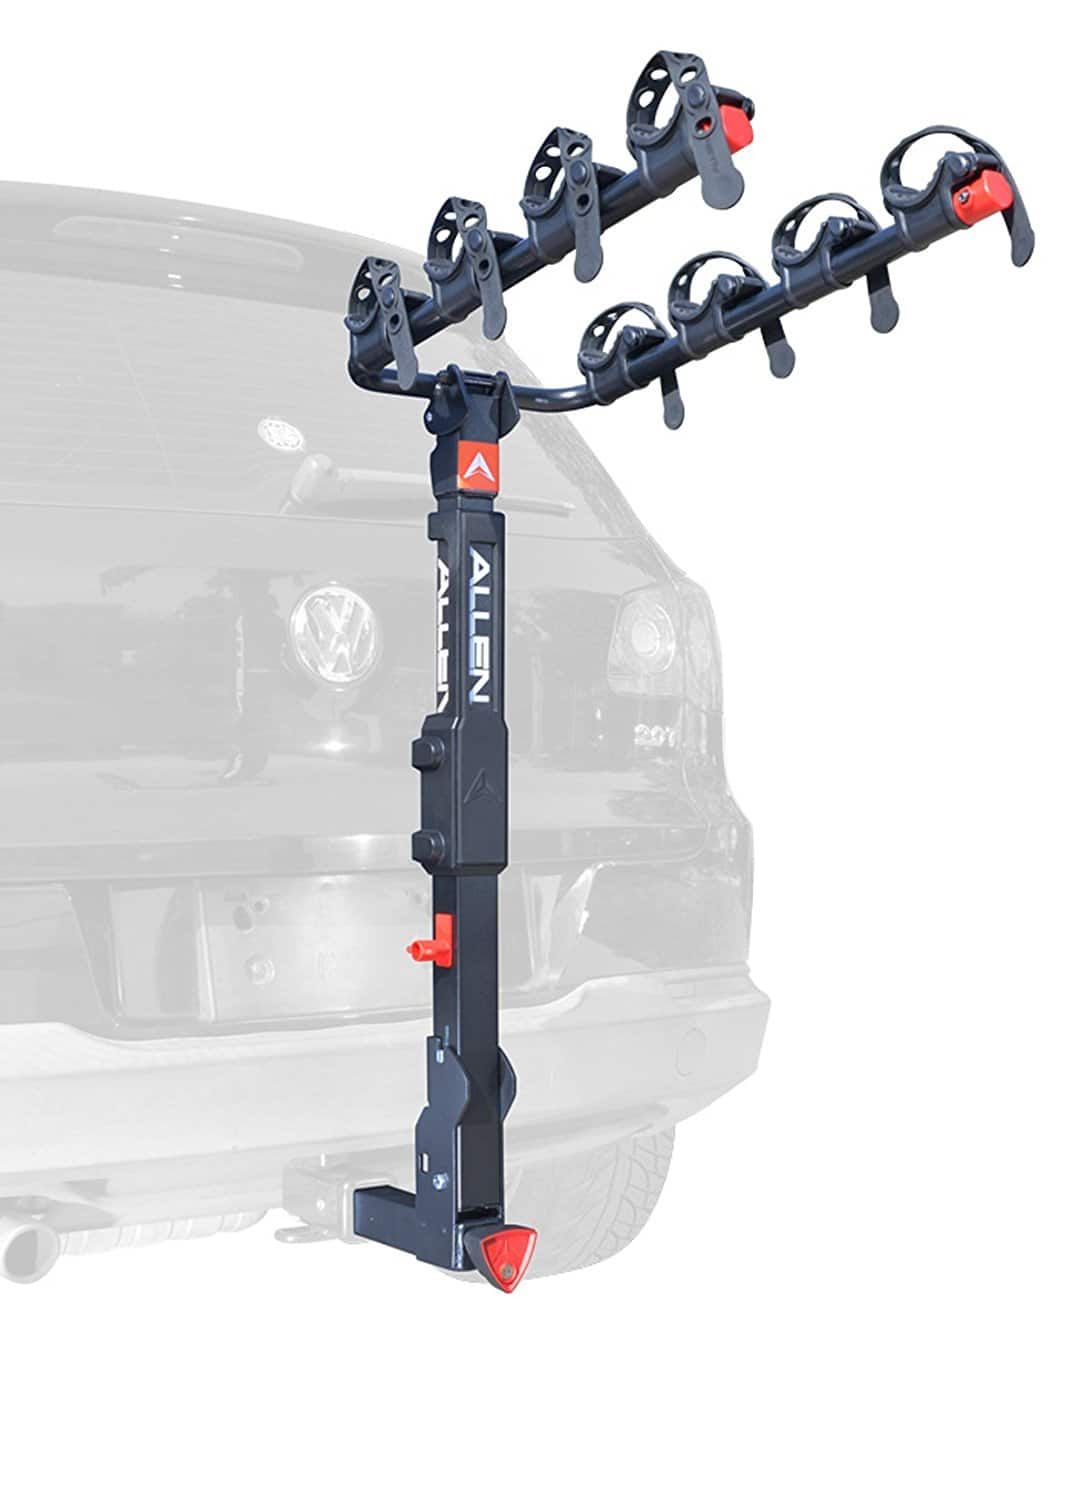 Allen Sports Premier Locking Quick Release 4-Bike Carrier $129.99